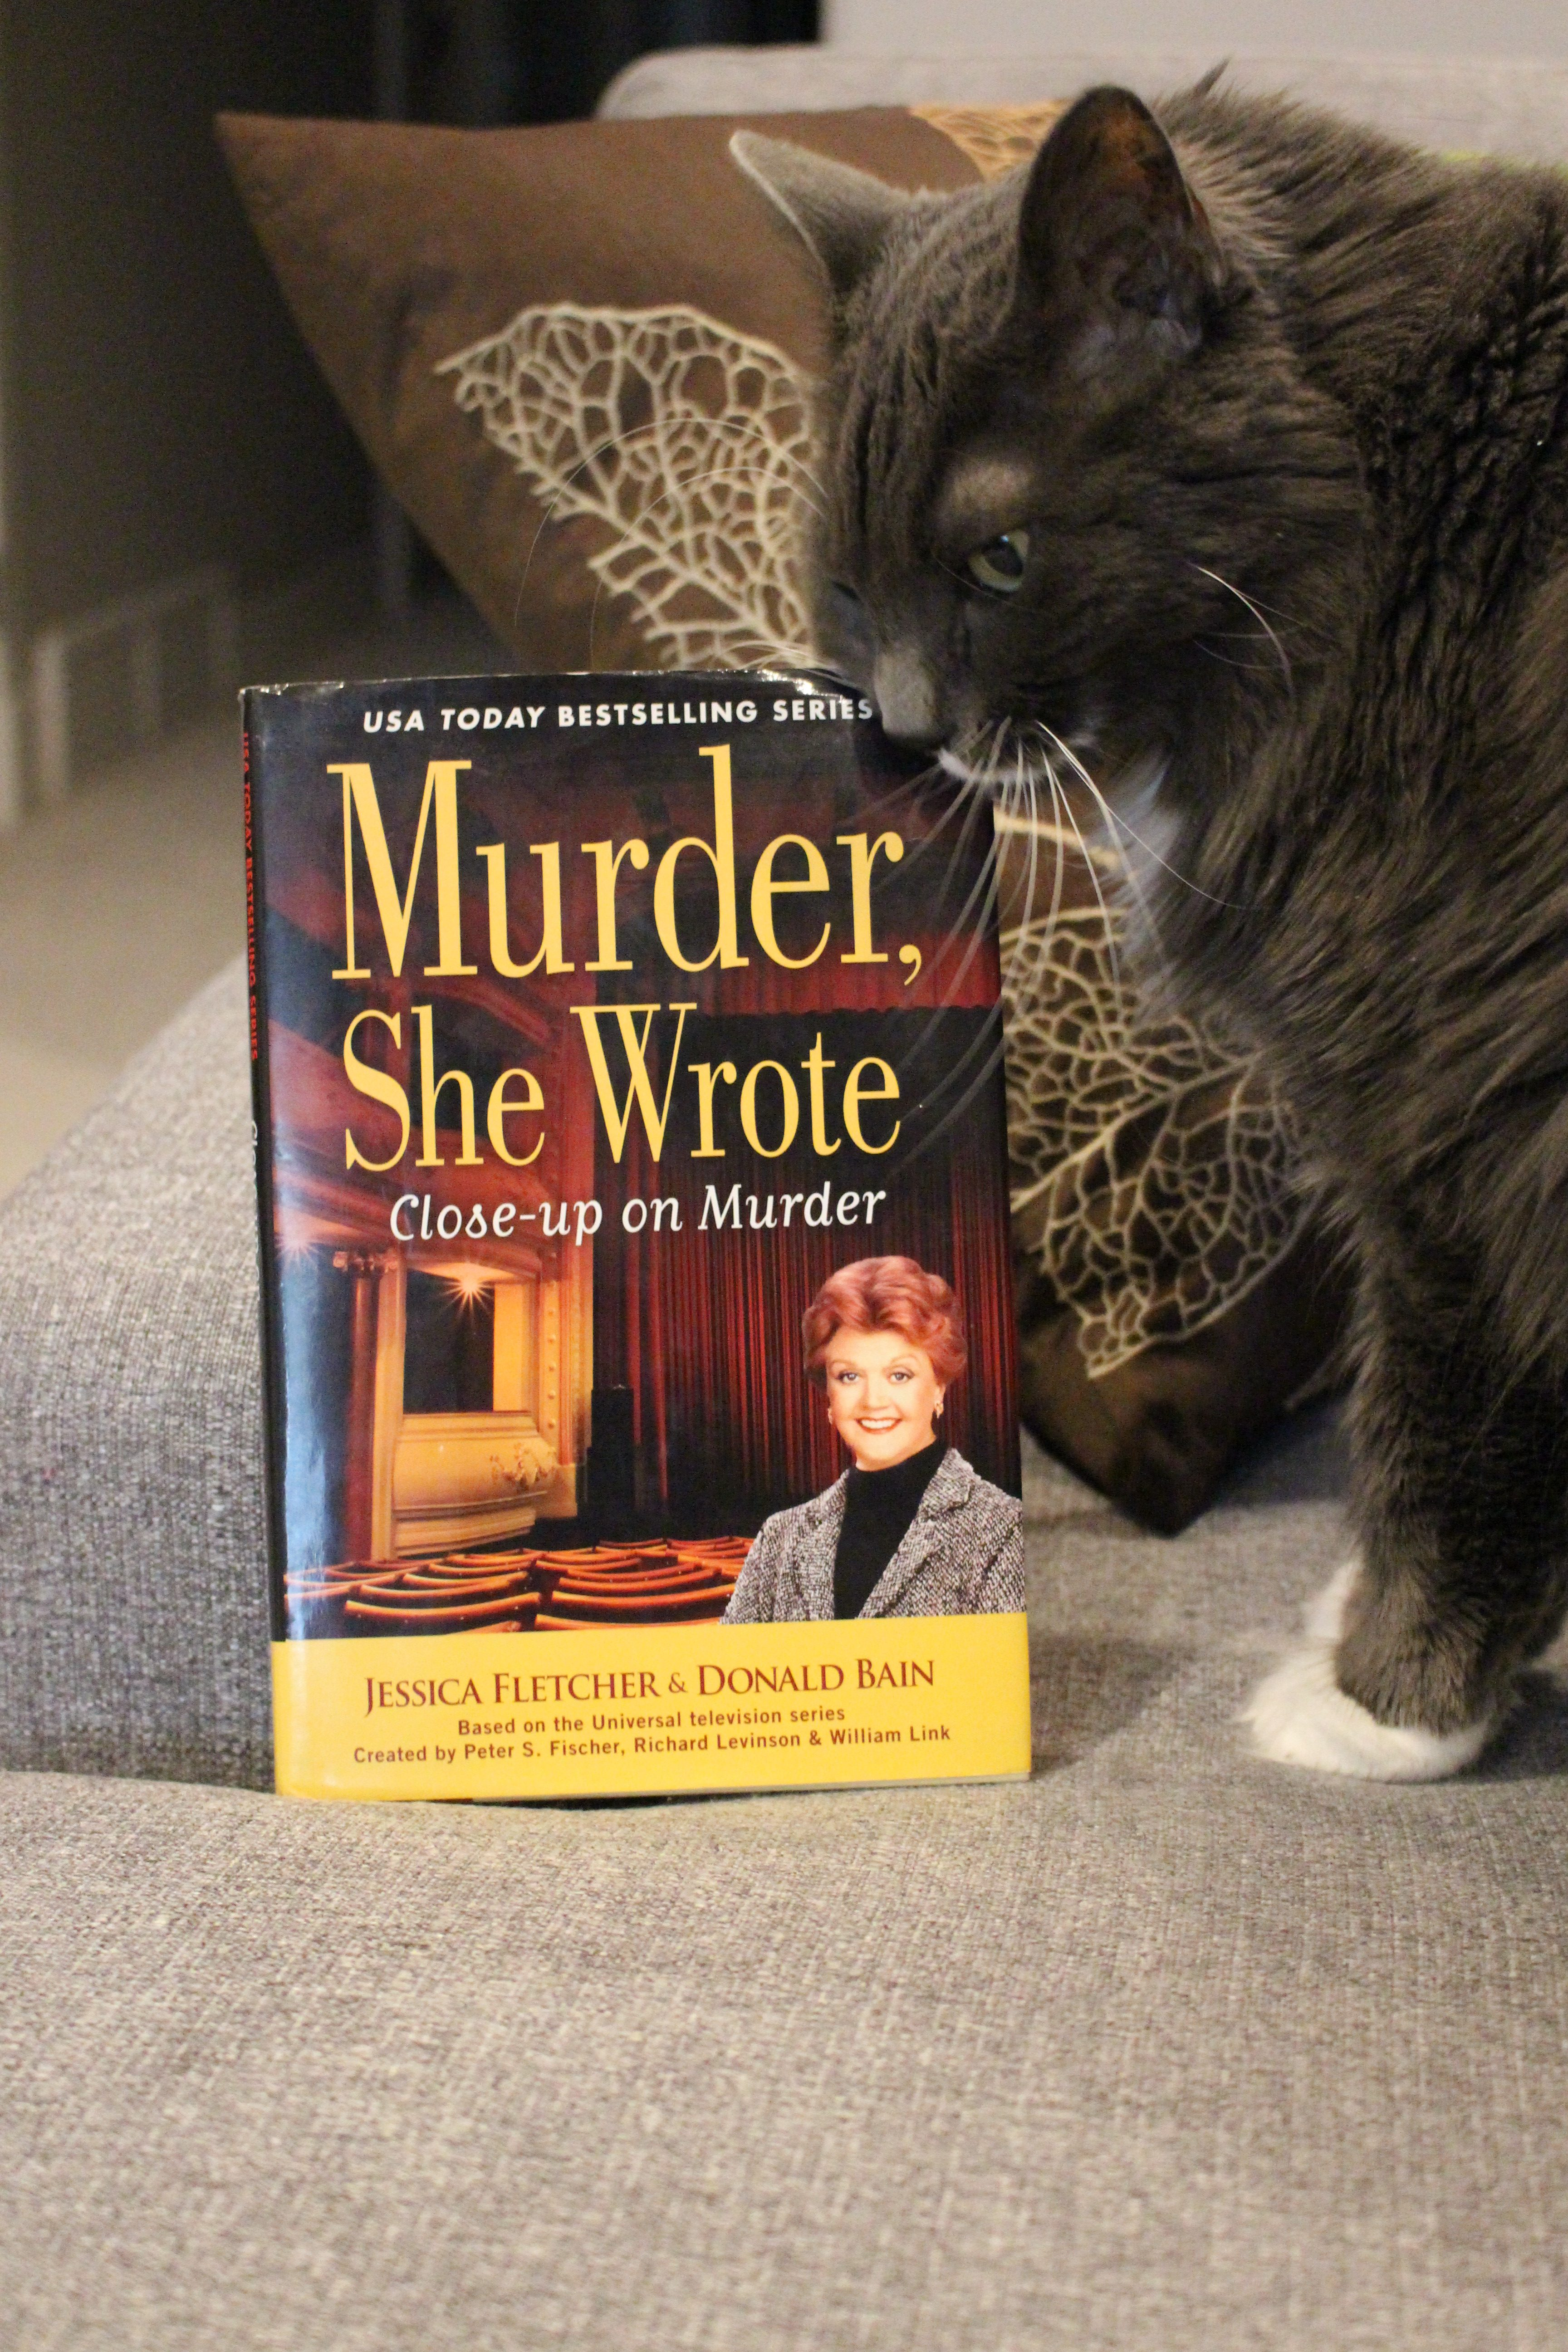 Book Review: Close-up on Murder: A Murder, She Wrote Mystery